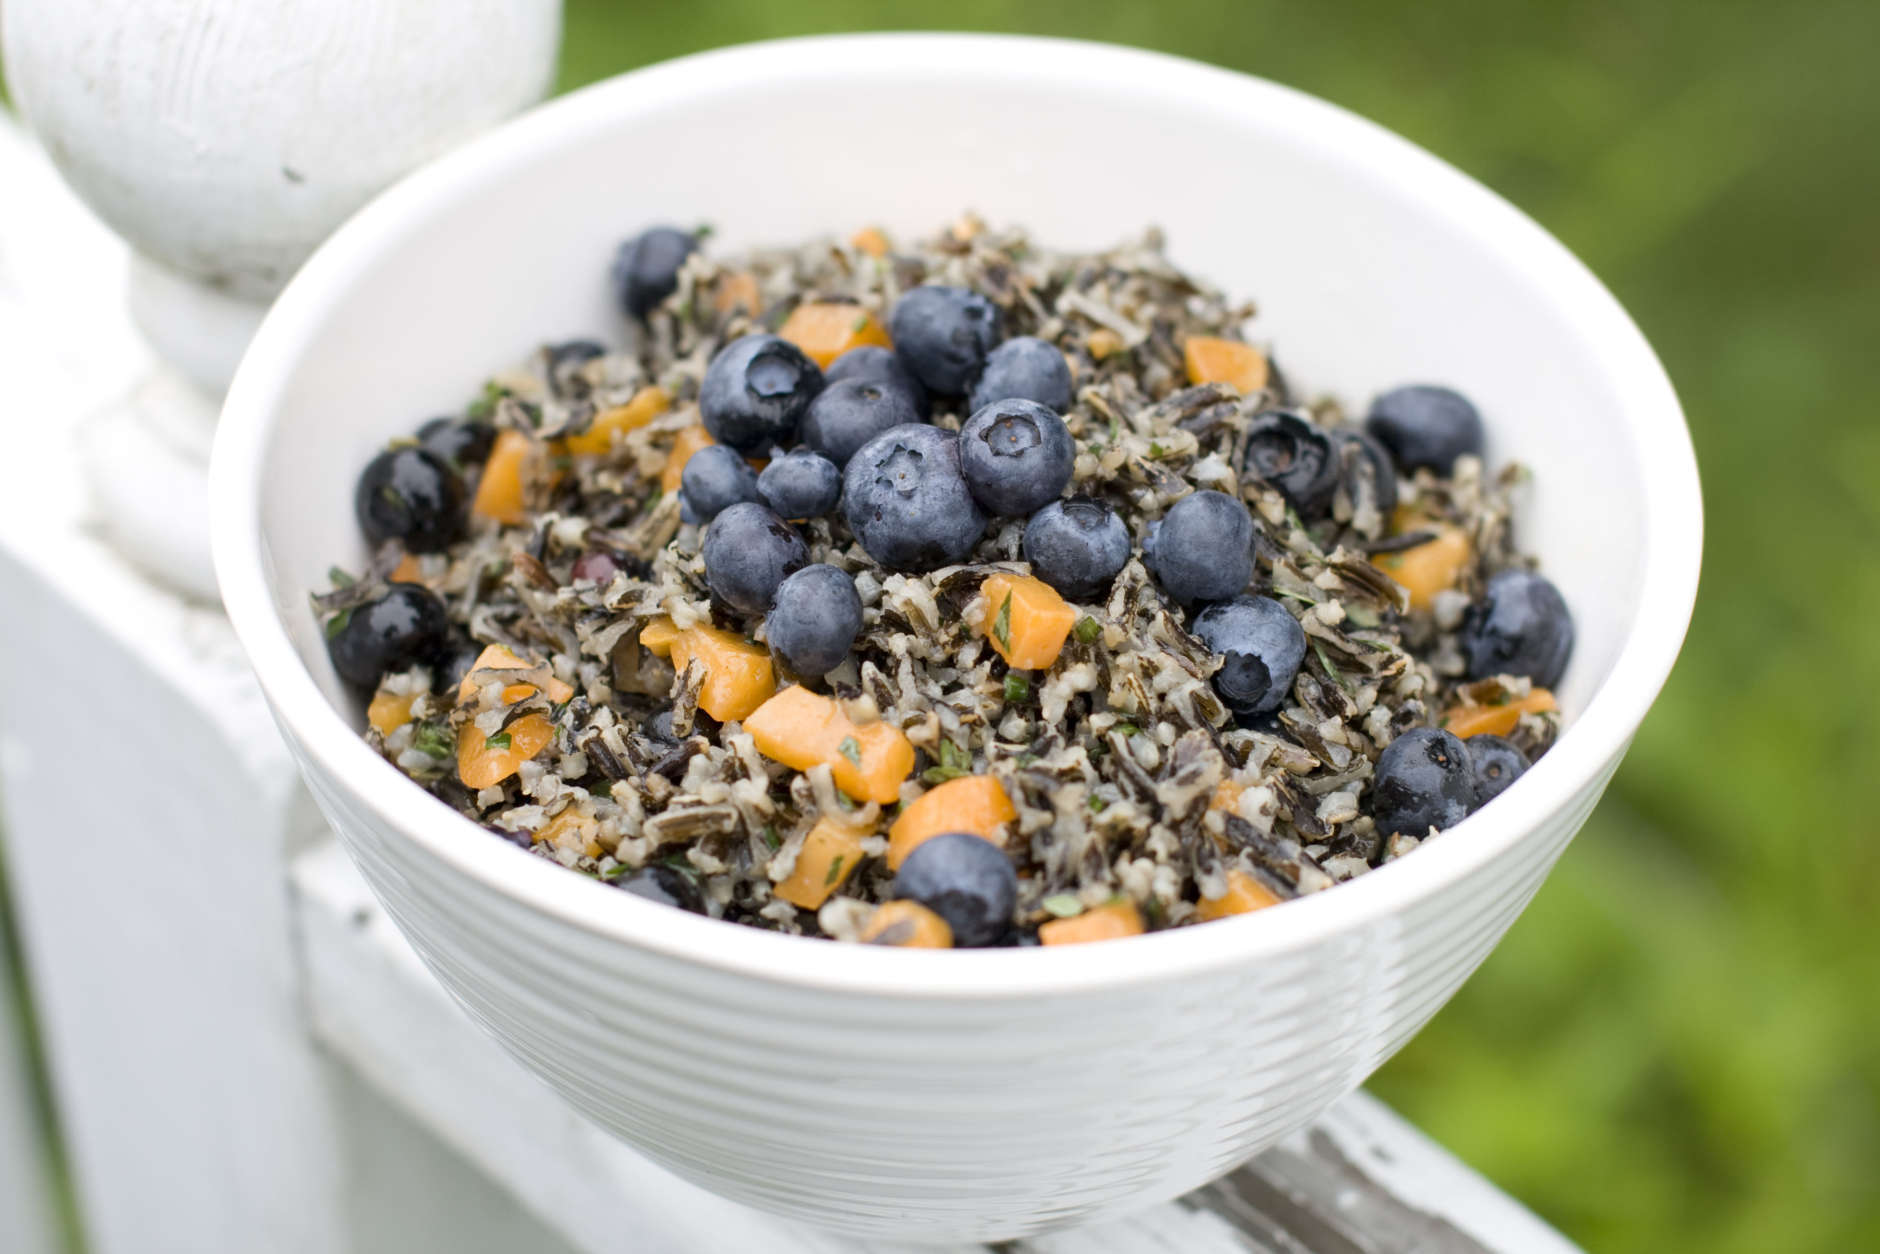 This July 22, 2013 photo shows a recipe for herbed wild rice salad with apricots and blueberries. (AP Photo/Matthew Mead)